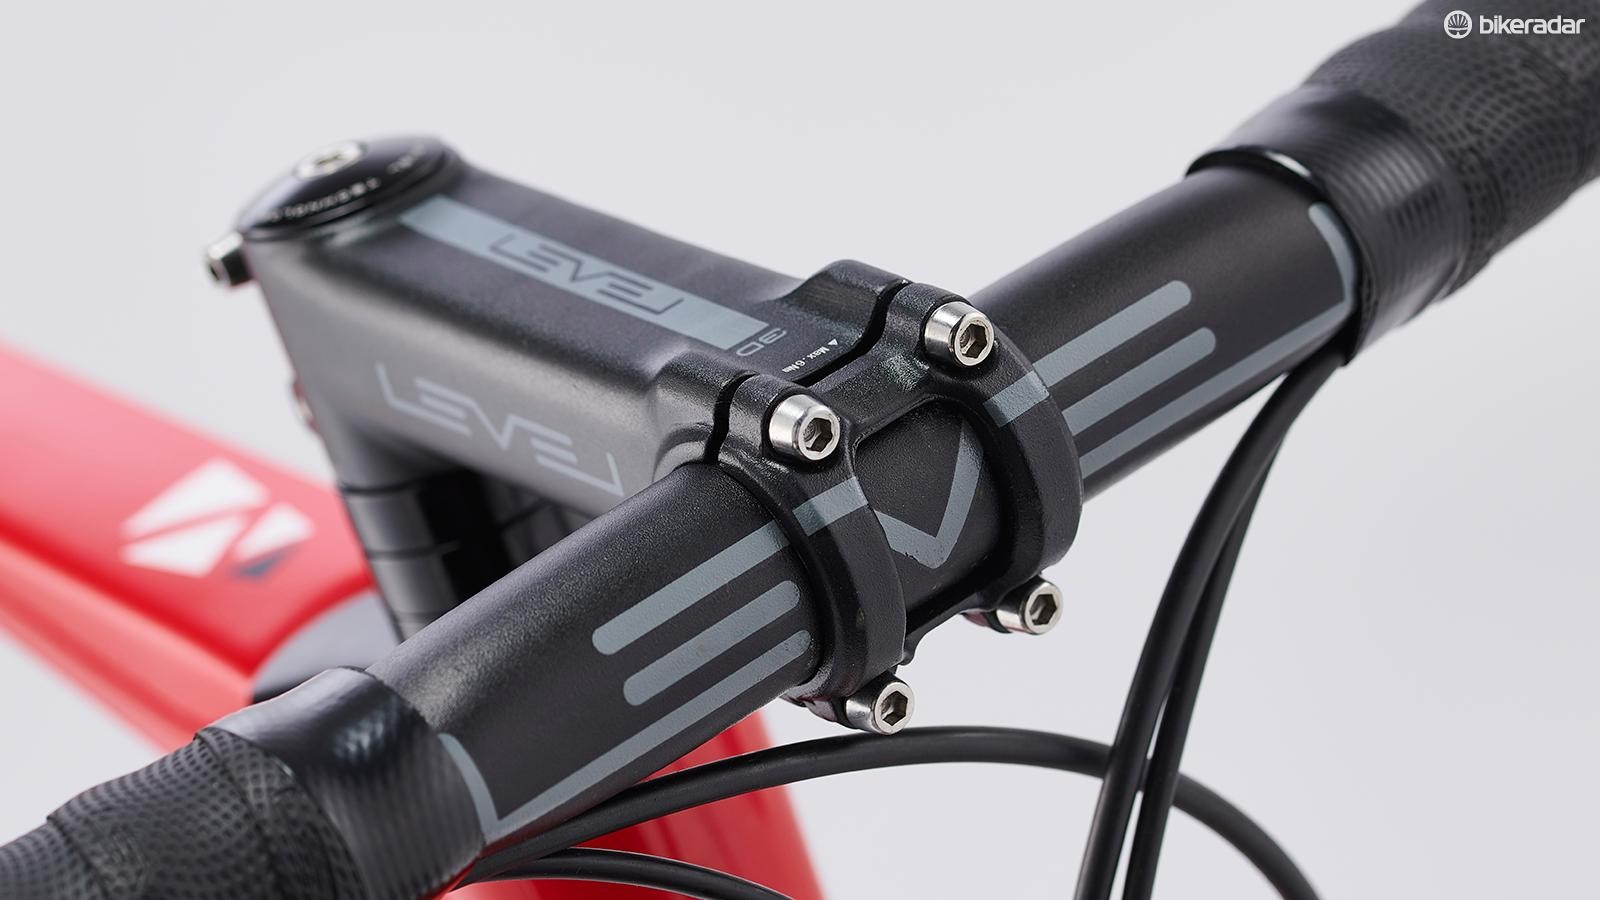 The Level bar and stem are quality alloy